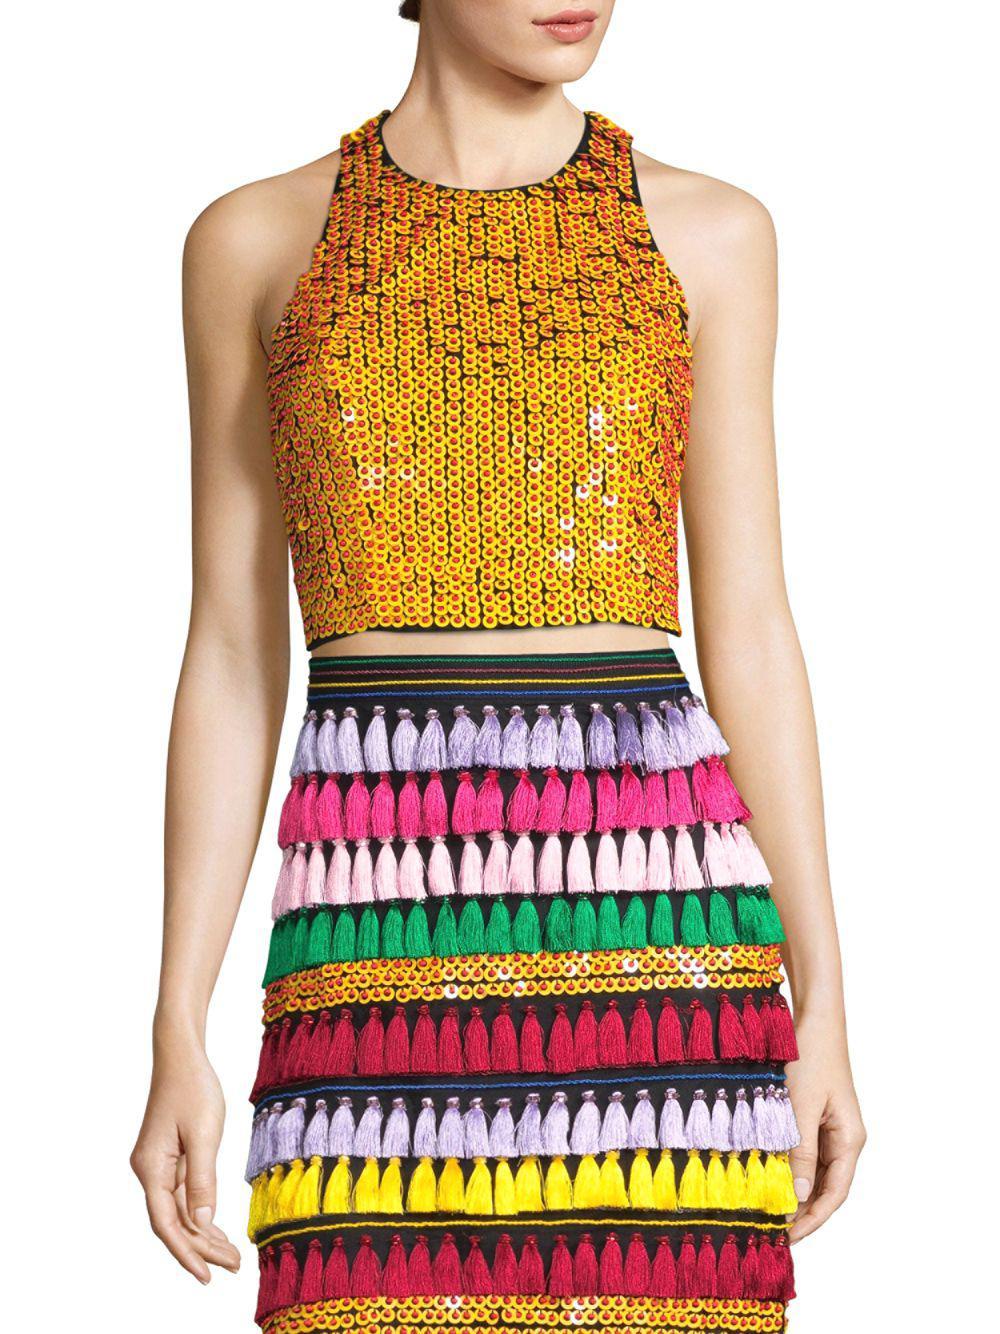 Alice + Olivia Sequined Angular Crop Top - Save 7% - Lyst